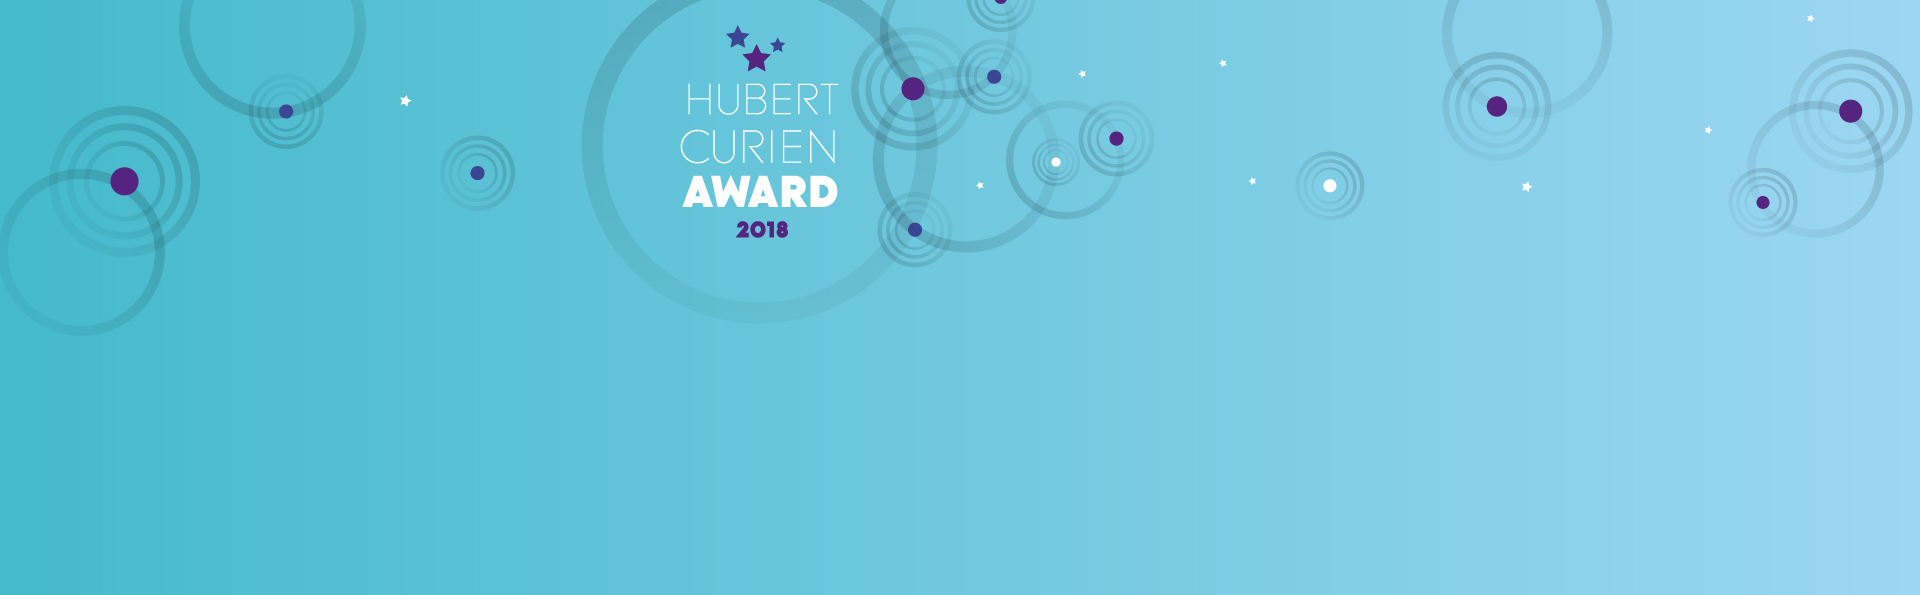 The Hubert Curien Award 2018